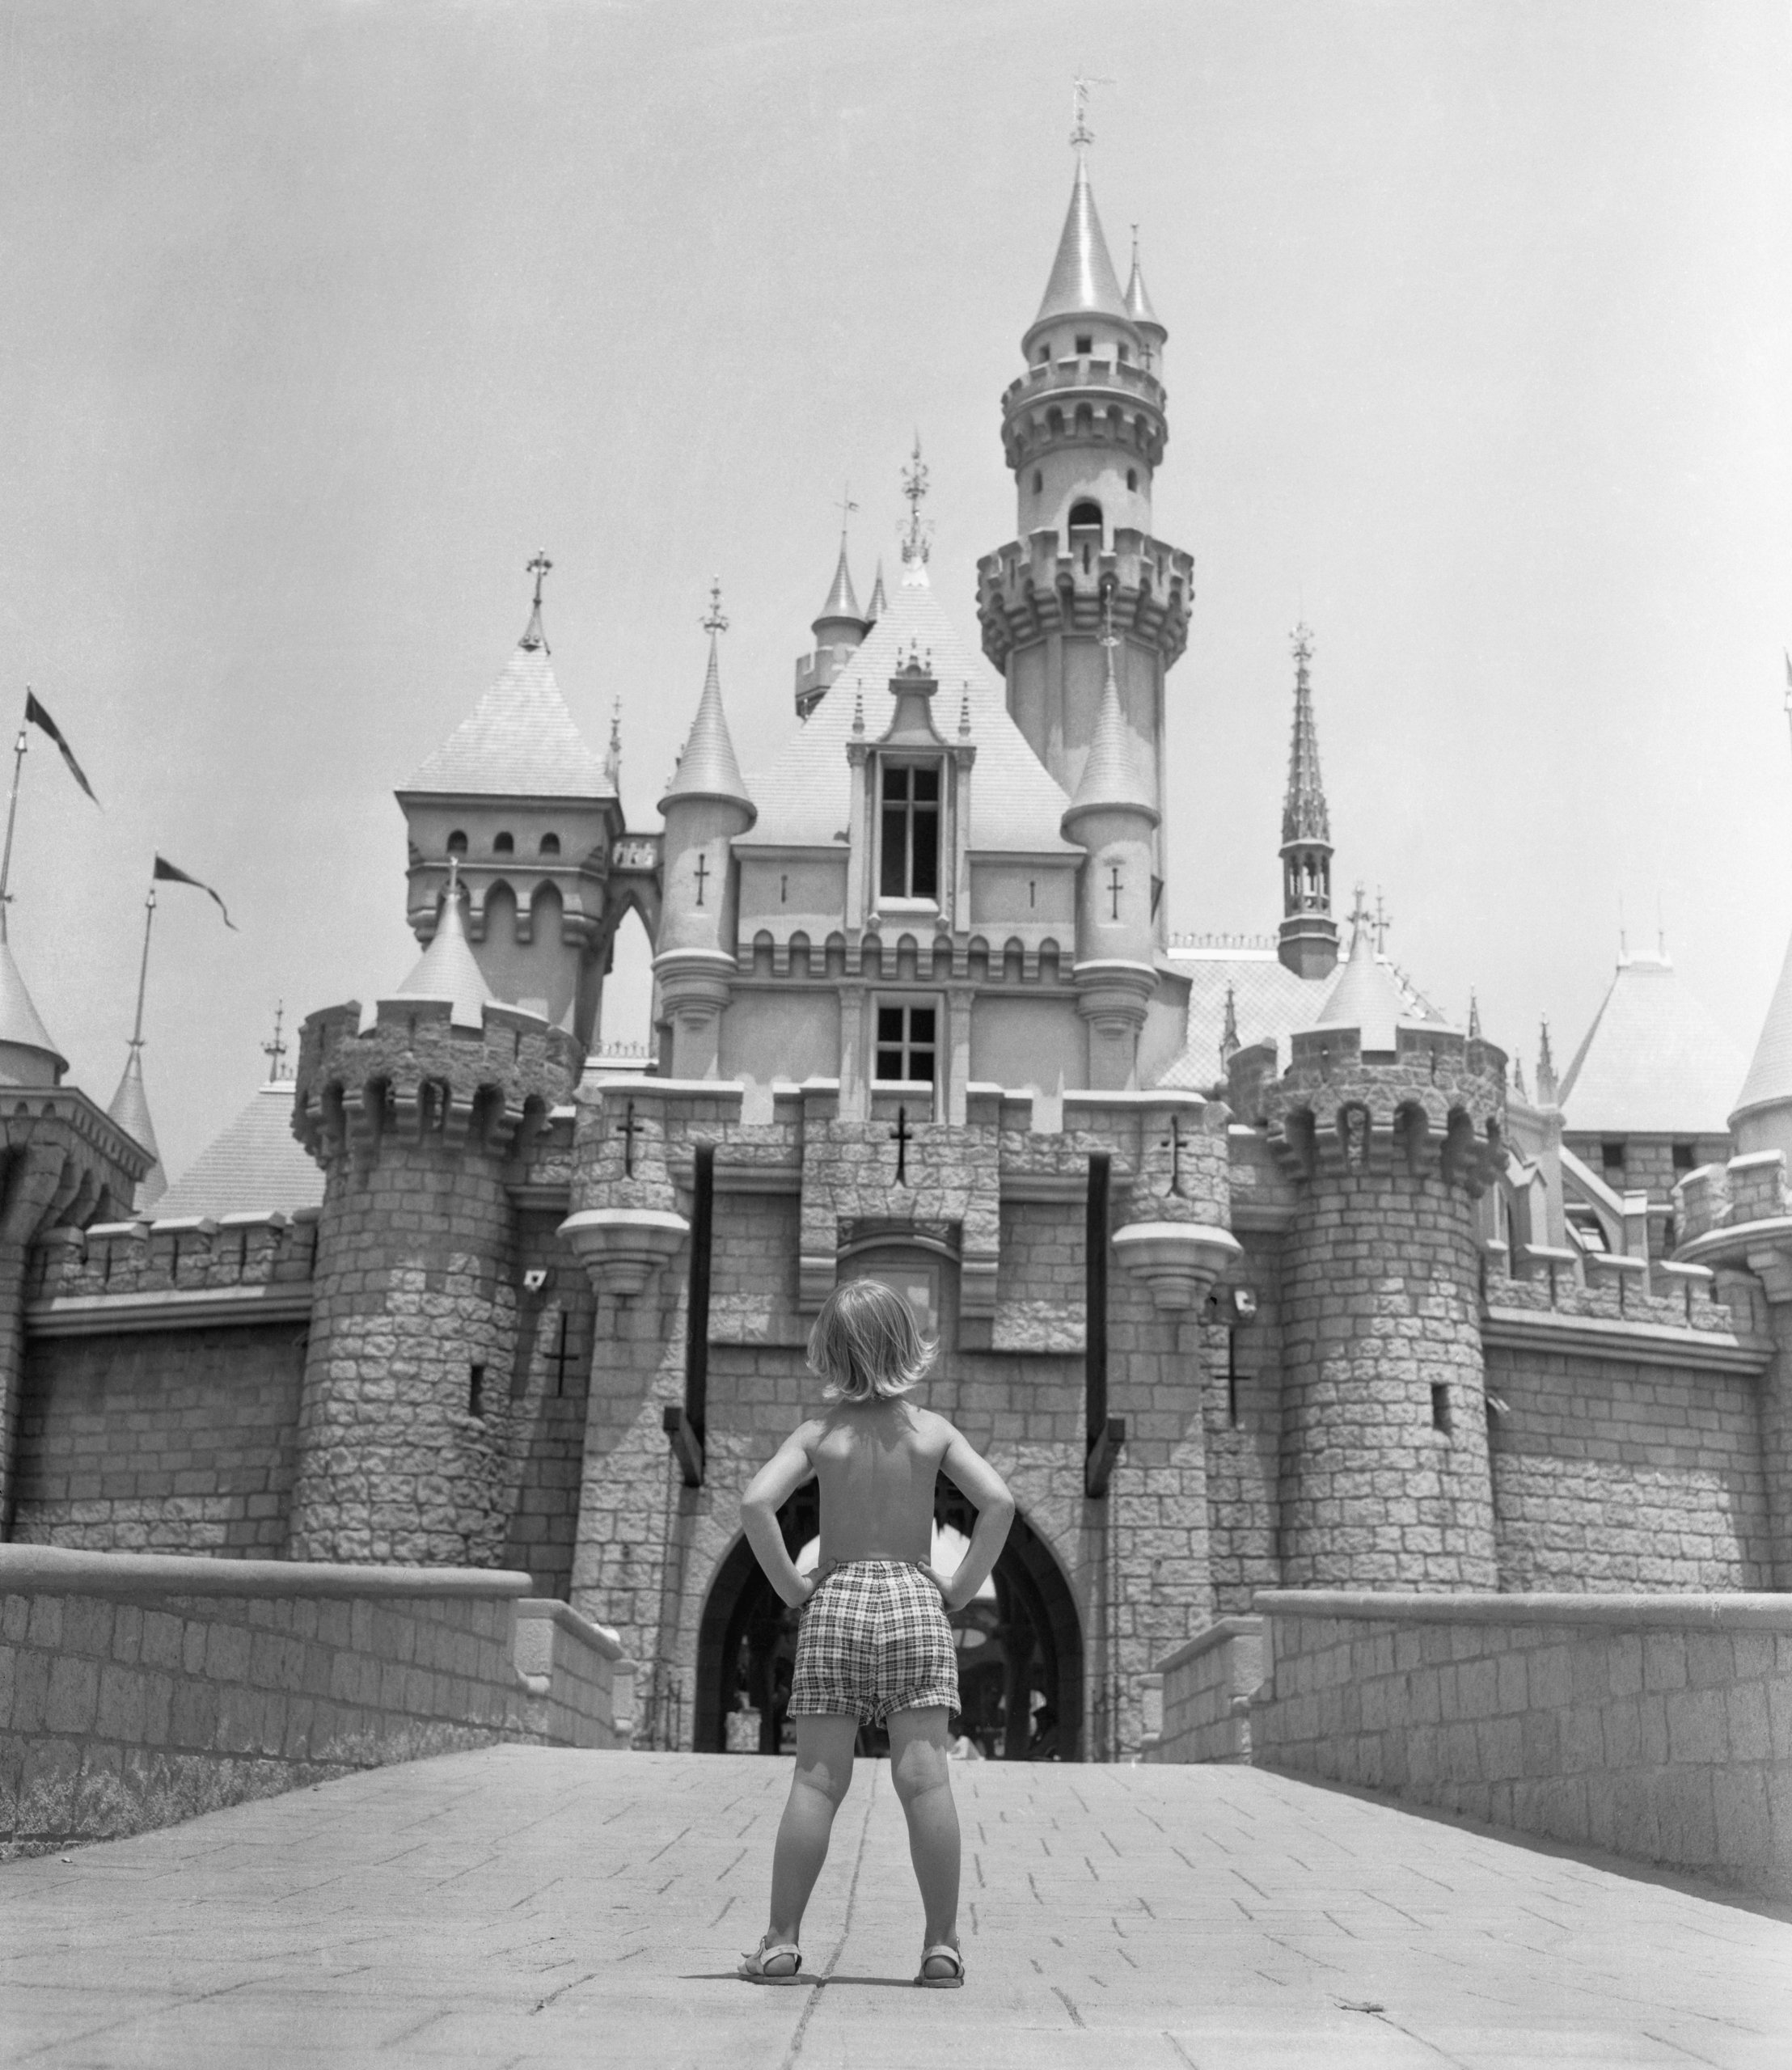 Girl Staring at Sleeping Beauty Castle